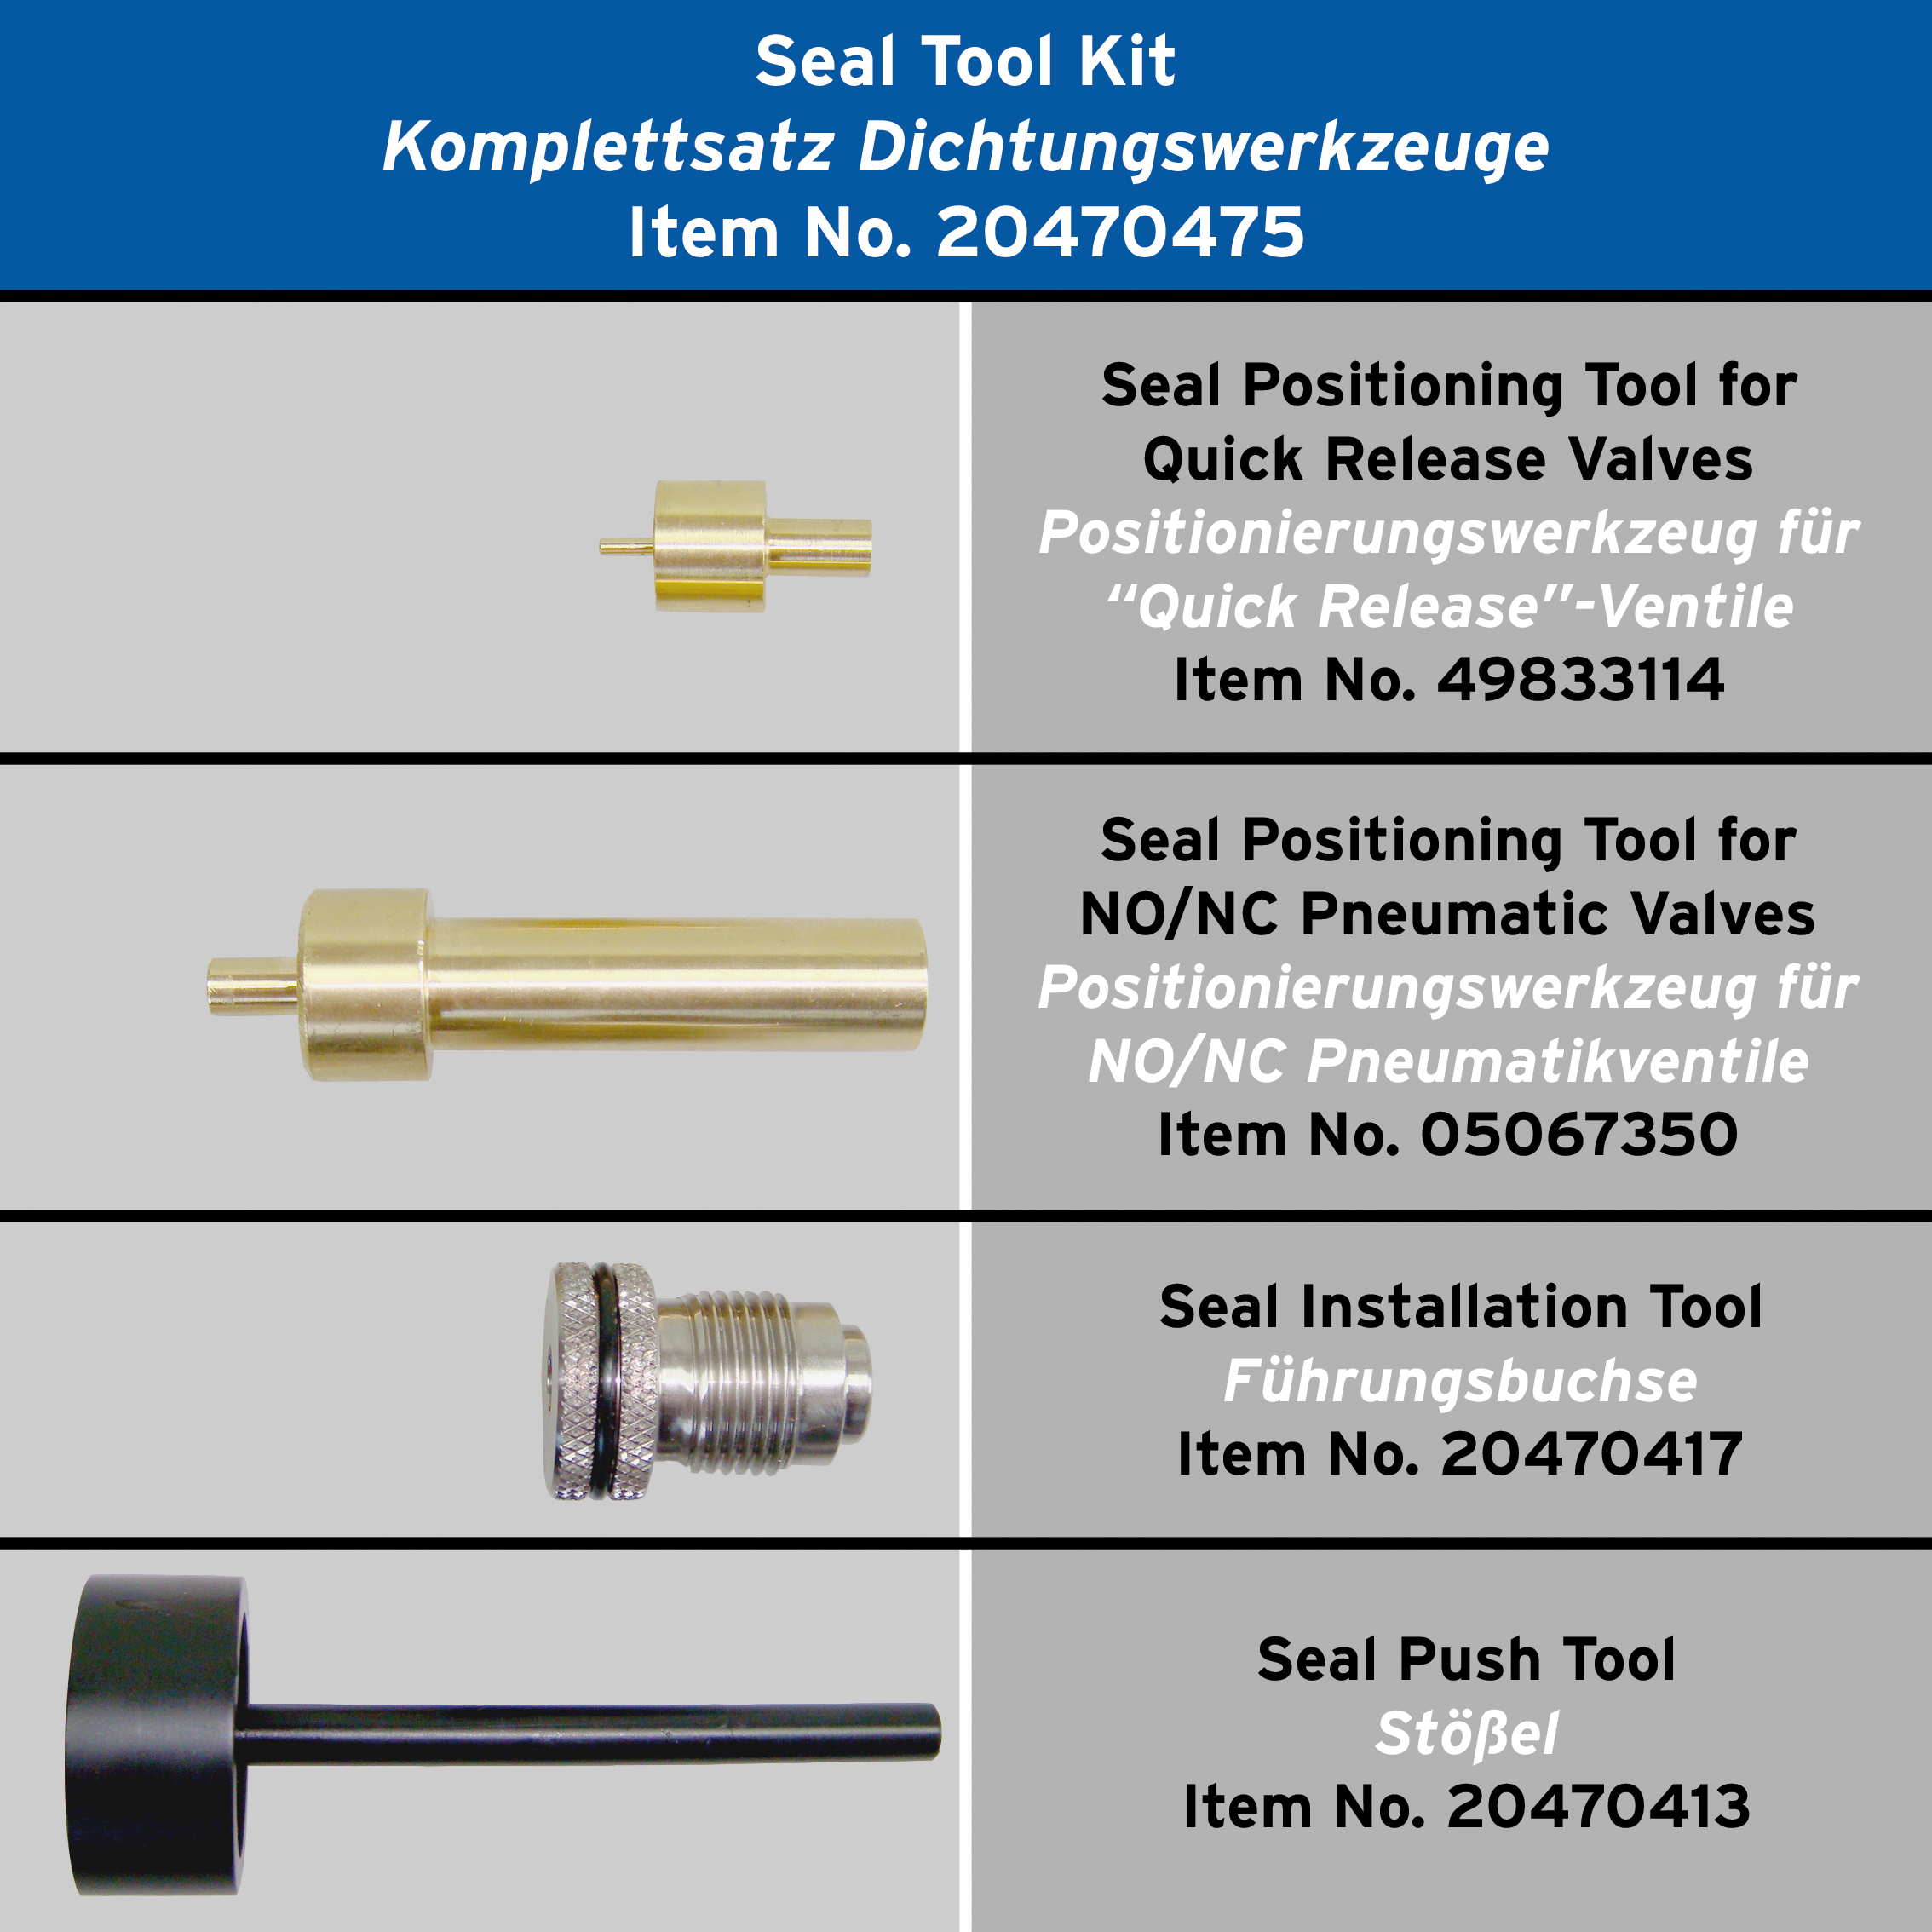 Components of the seal tool kit for pneumatic valves